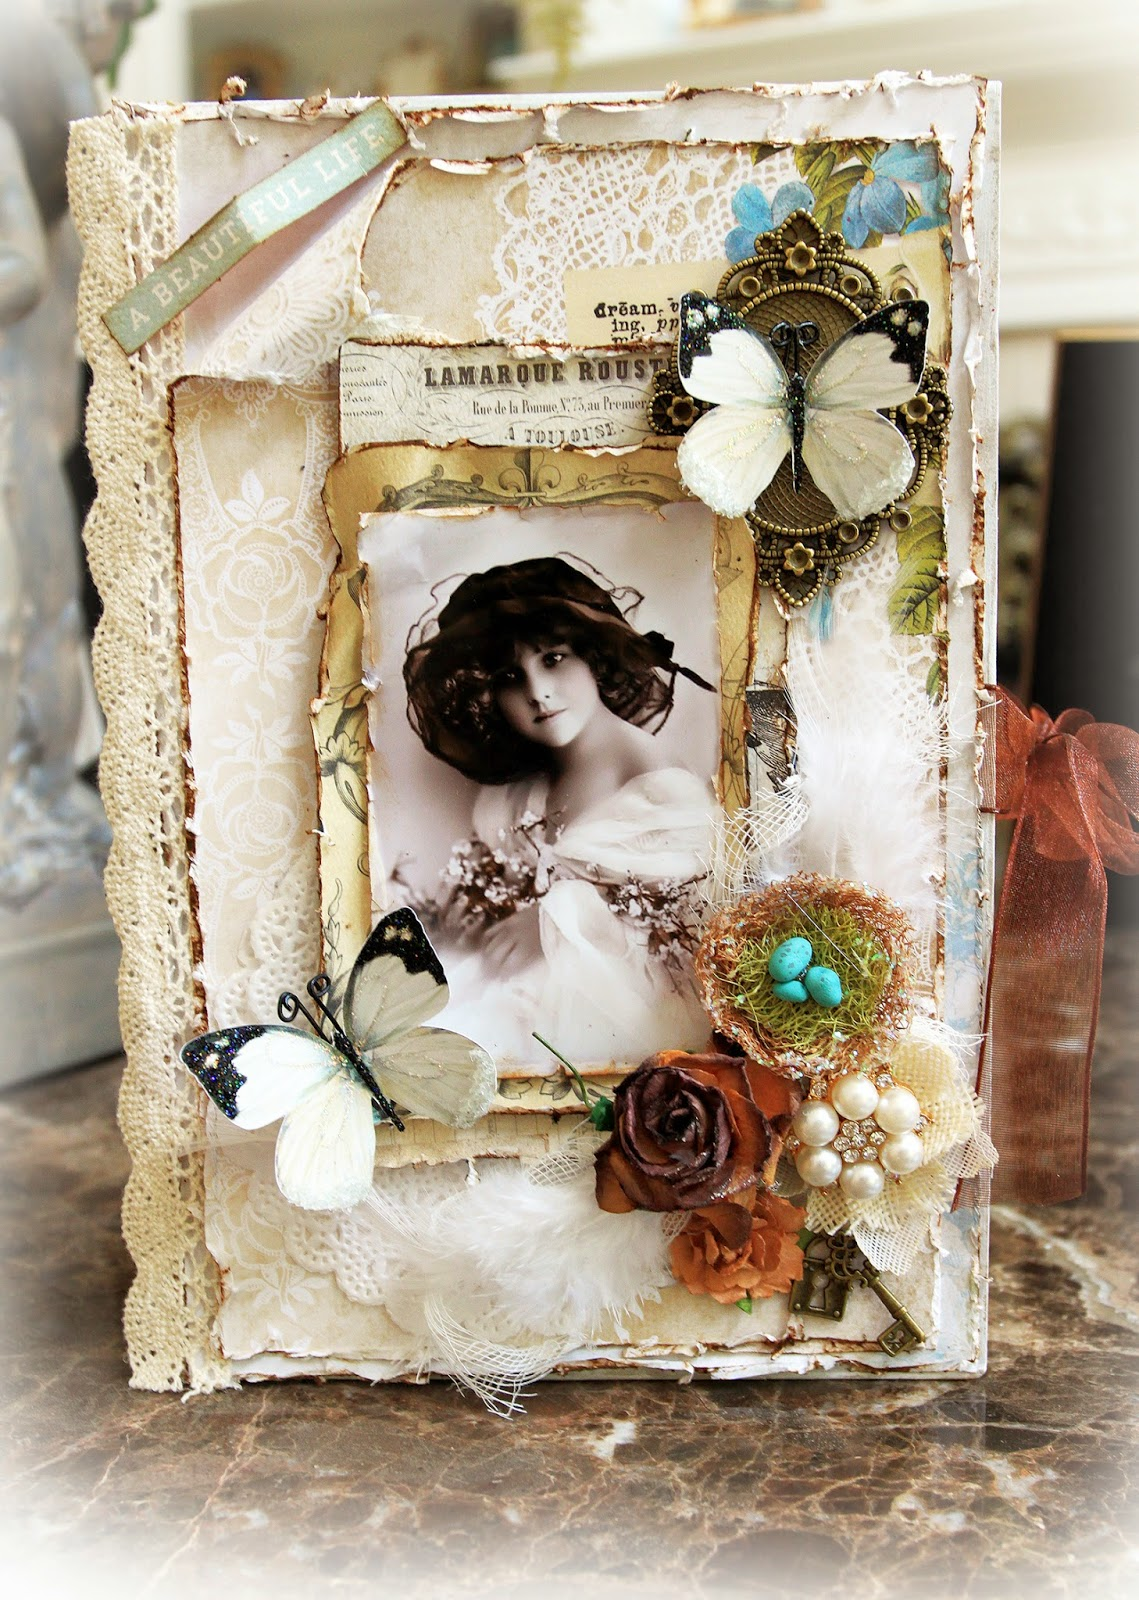 My Glitter Coated Life A Beautiful Life Altered Book Box